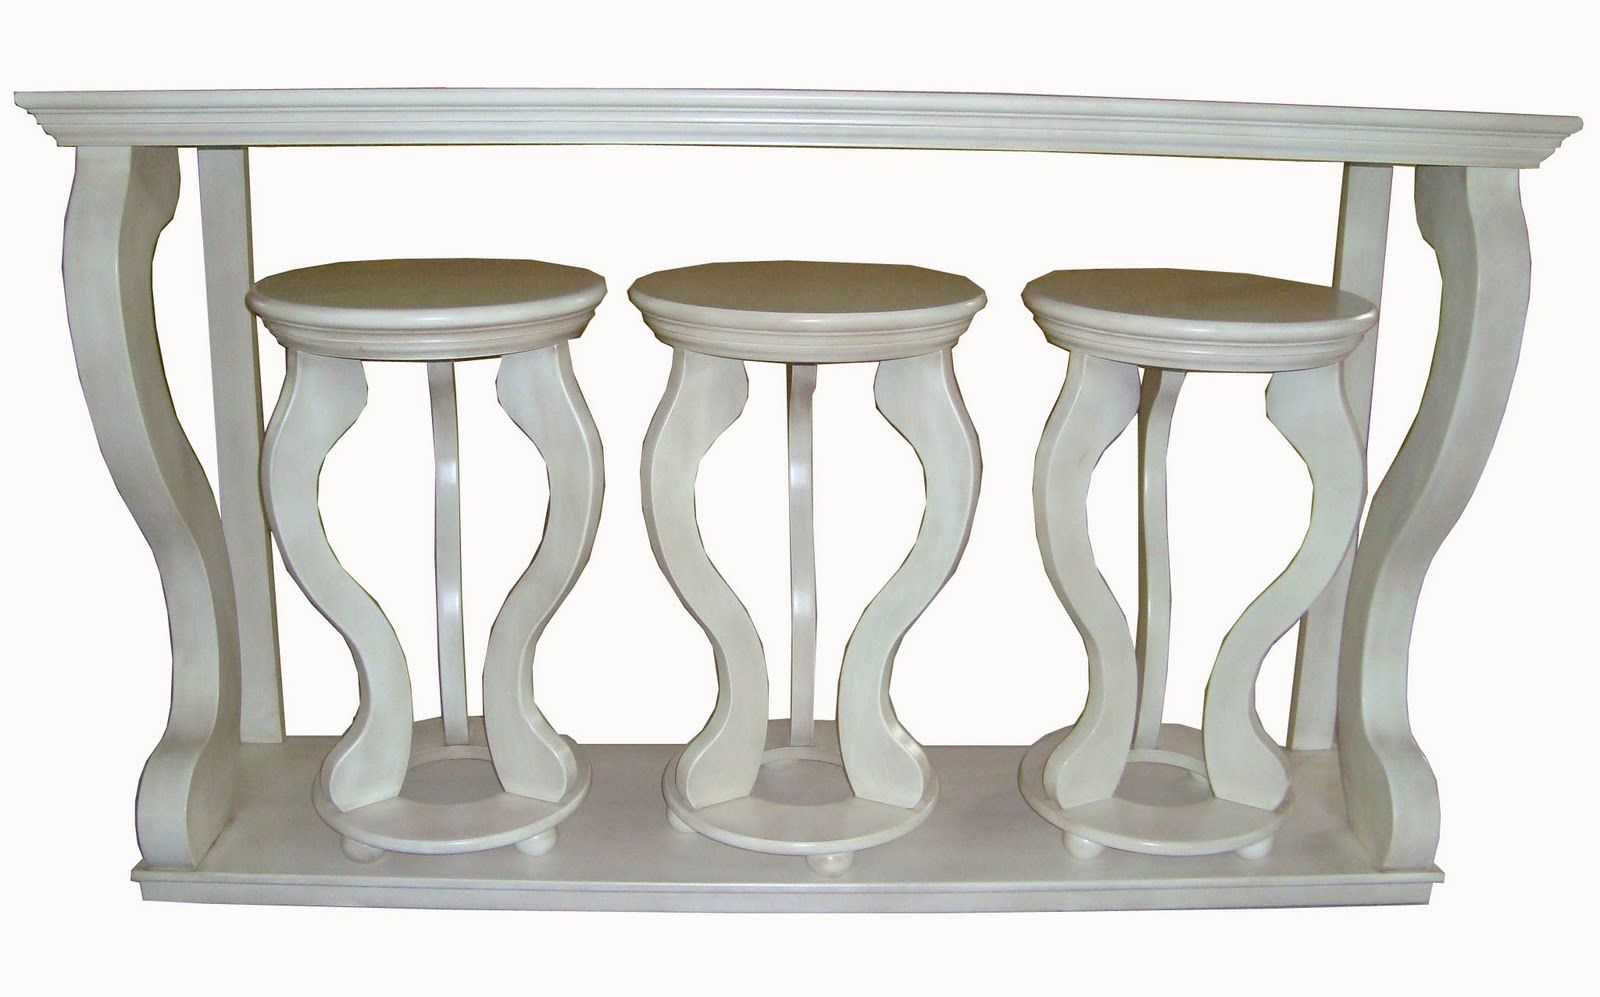 Peachy I Want This Tainoki Console Table And Stools Set So Bad Gmtry Best Dining Table And Chair Ideas Images Gmtryco